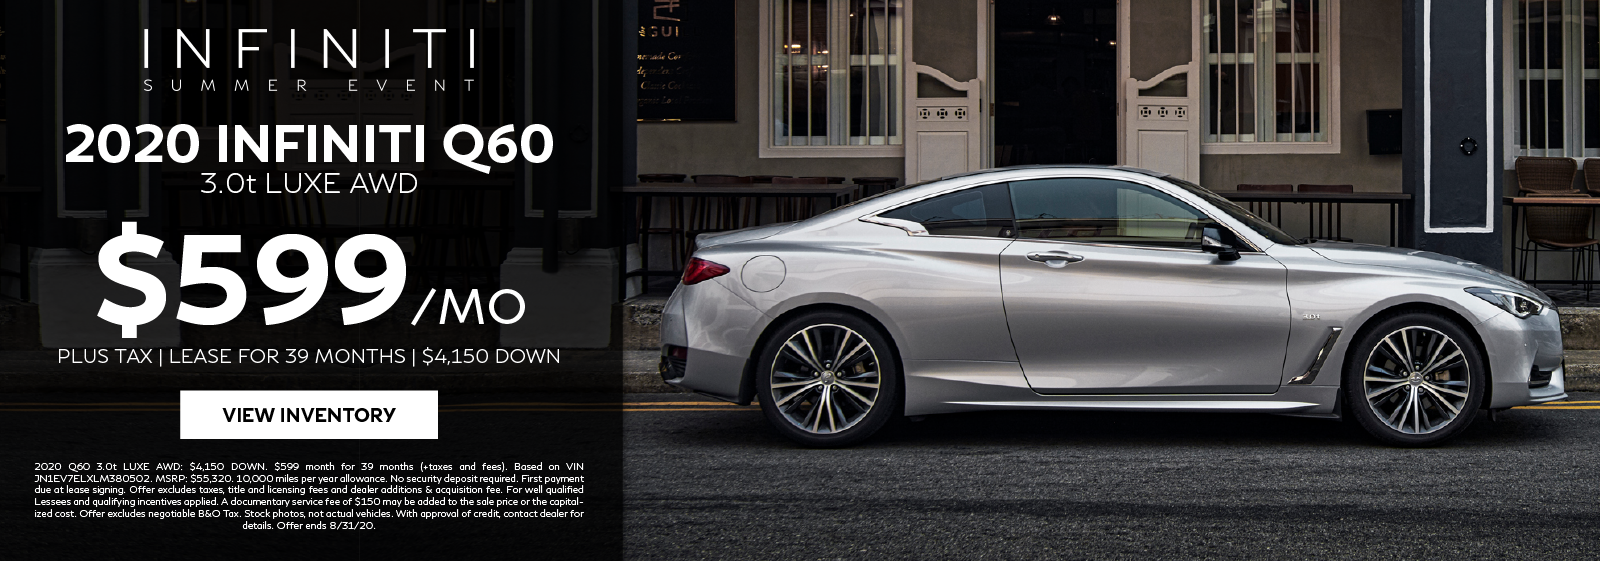 Lease a 2020 Q60 3.0t LUXE AWD for $599 per month for 39 months. Click to view inventory.